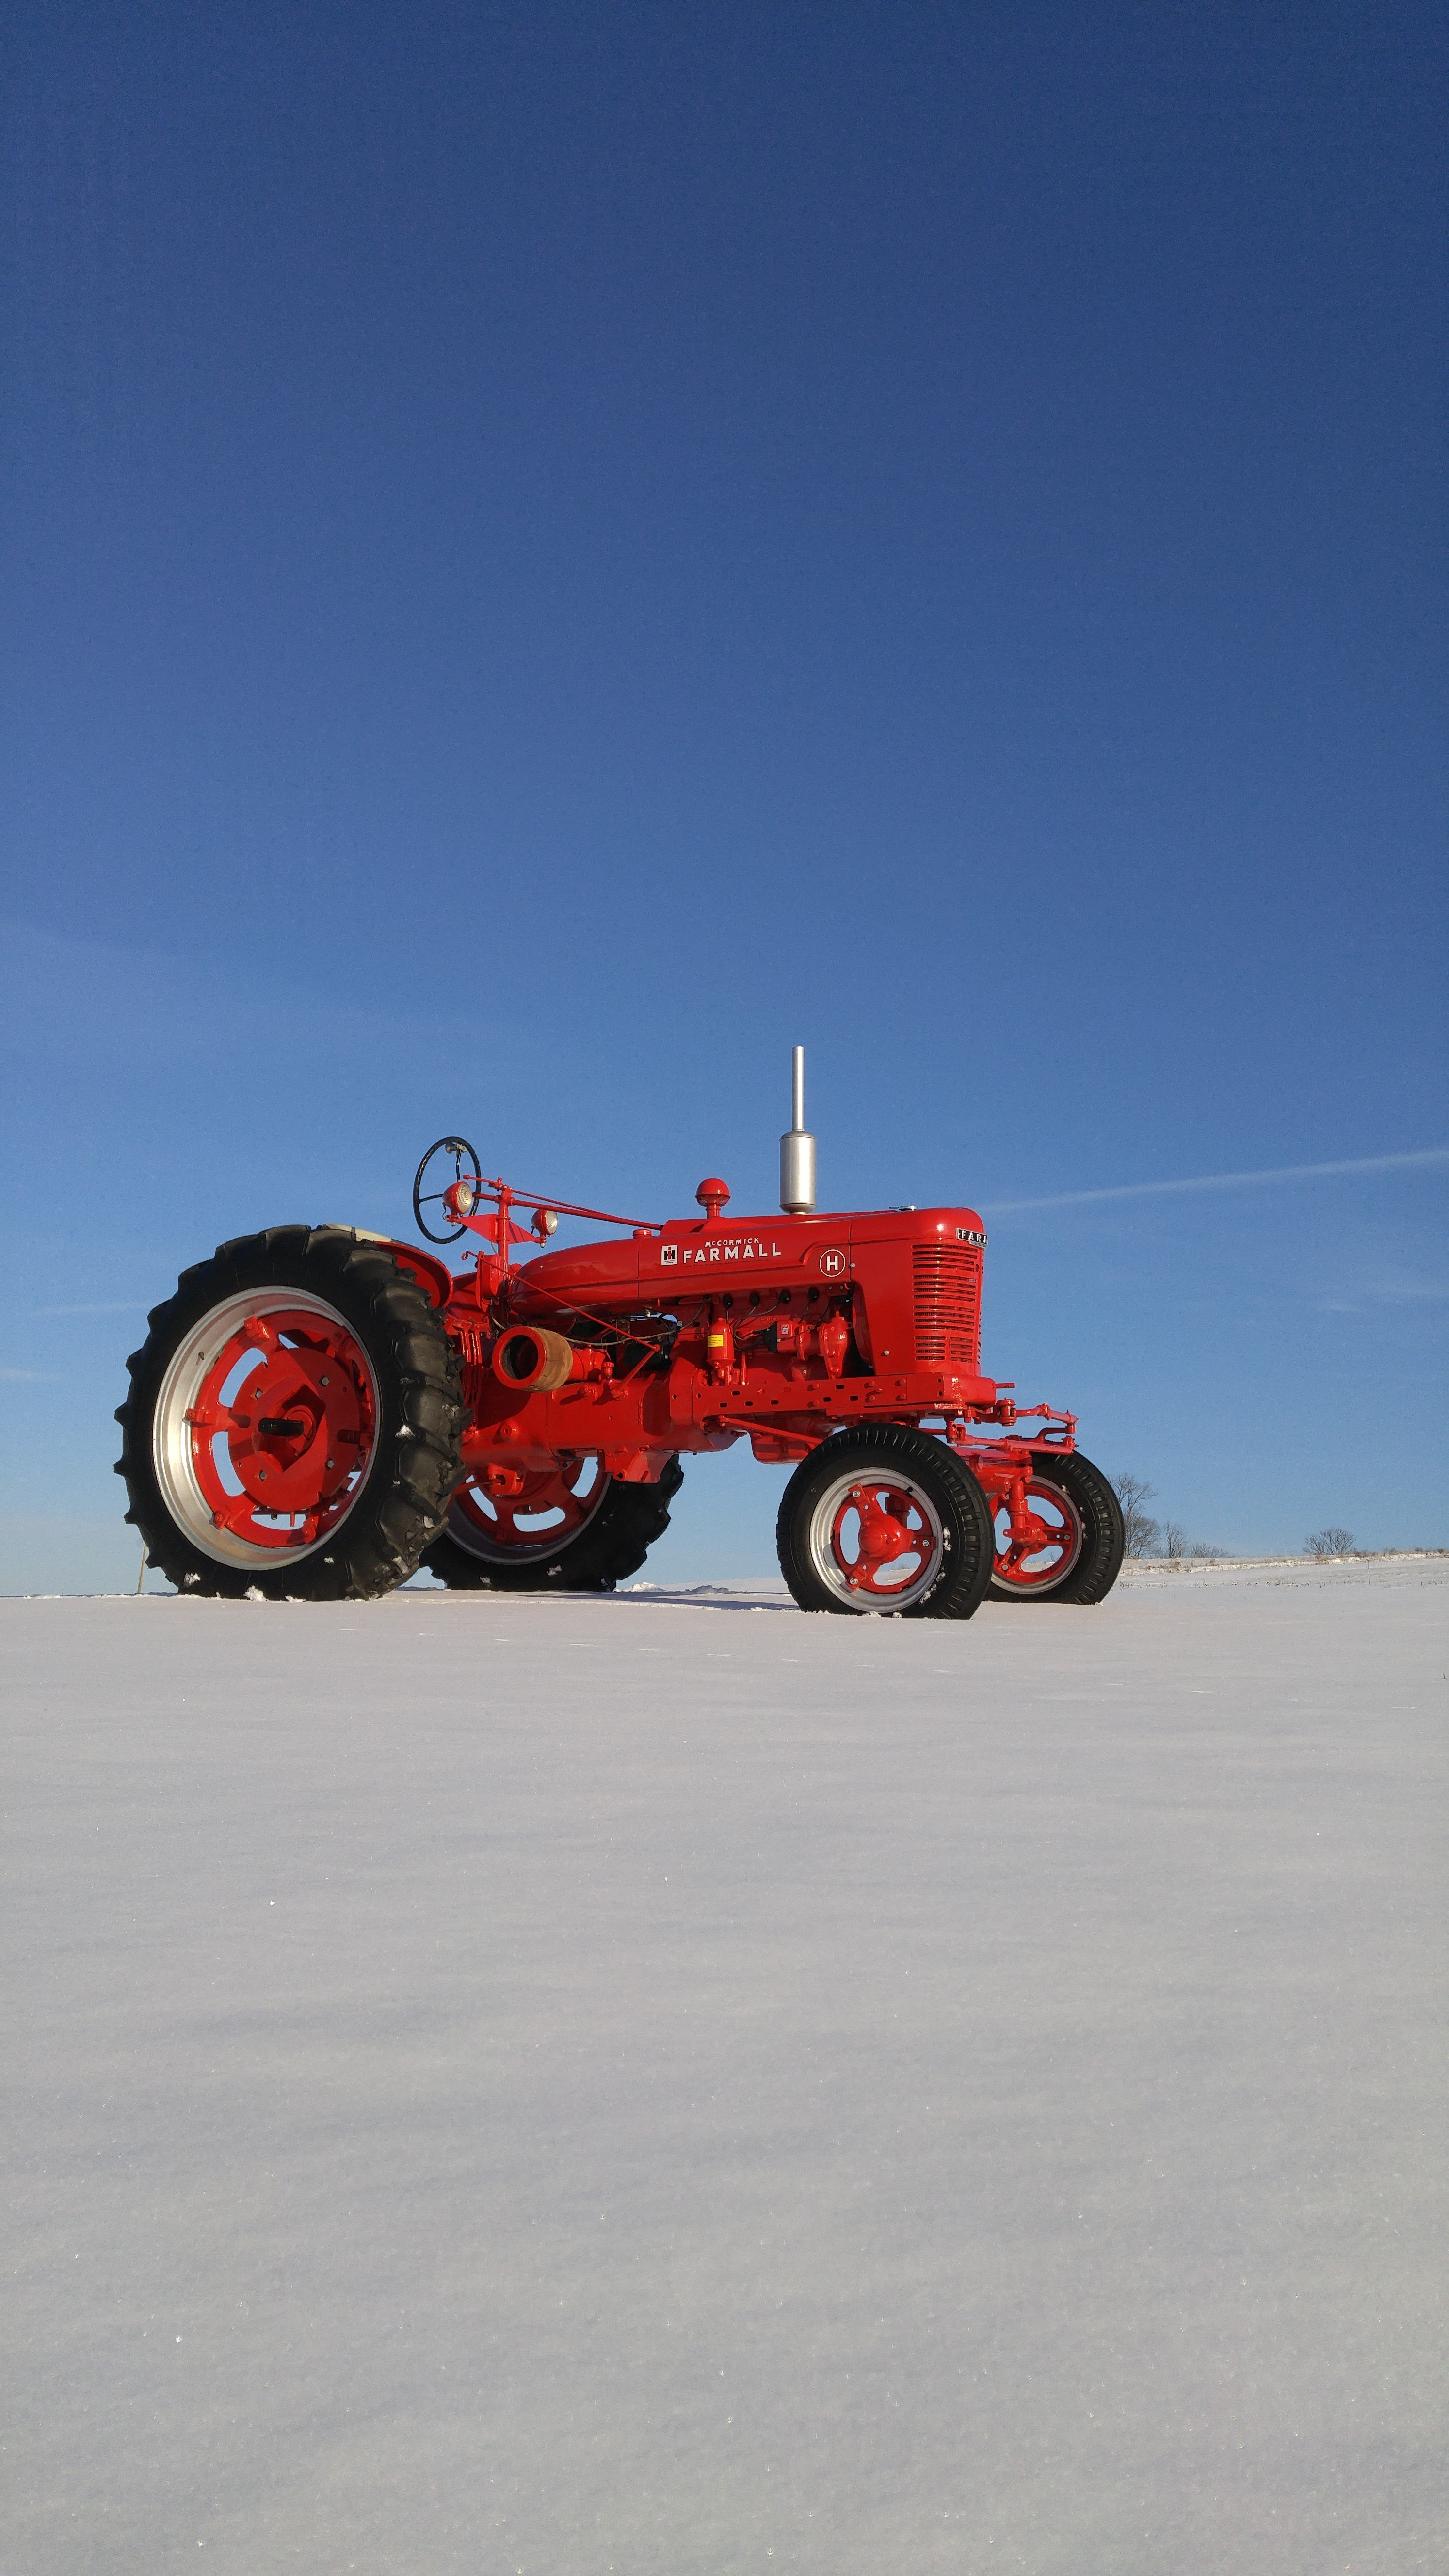 1943 Farmall H - Page 7 - Projects, Builds, & Restorations